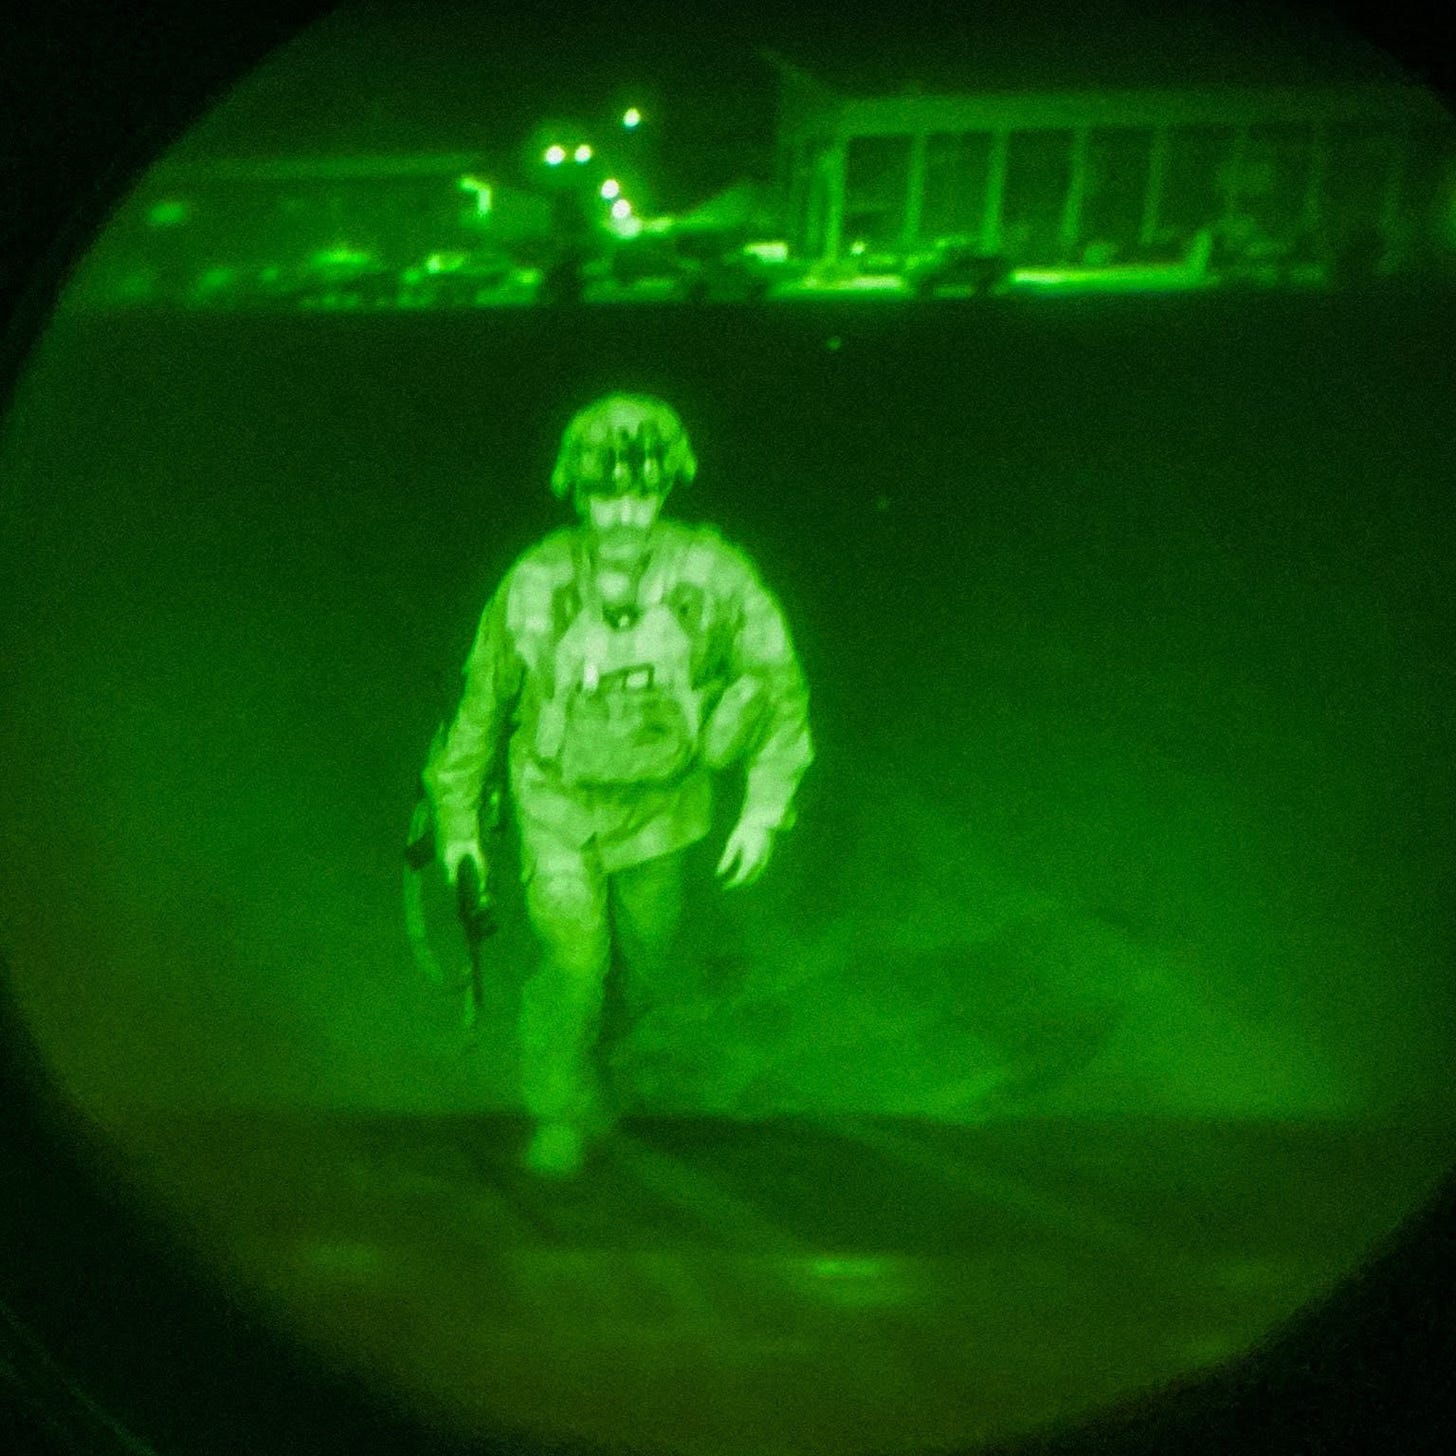 A man in full combat uniform boards a plane at night.